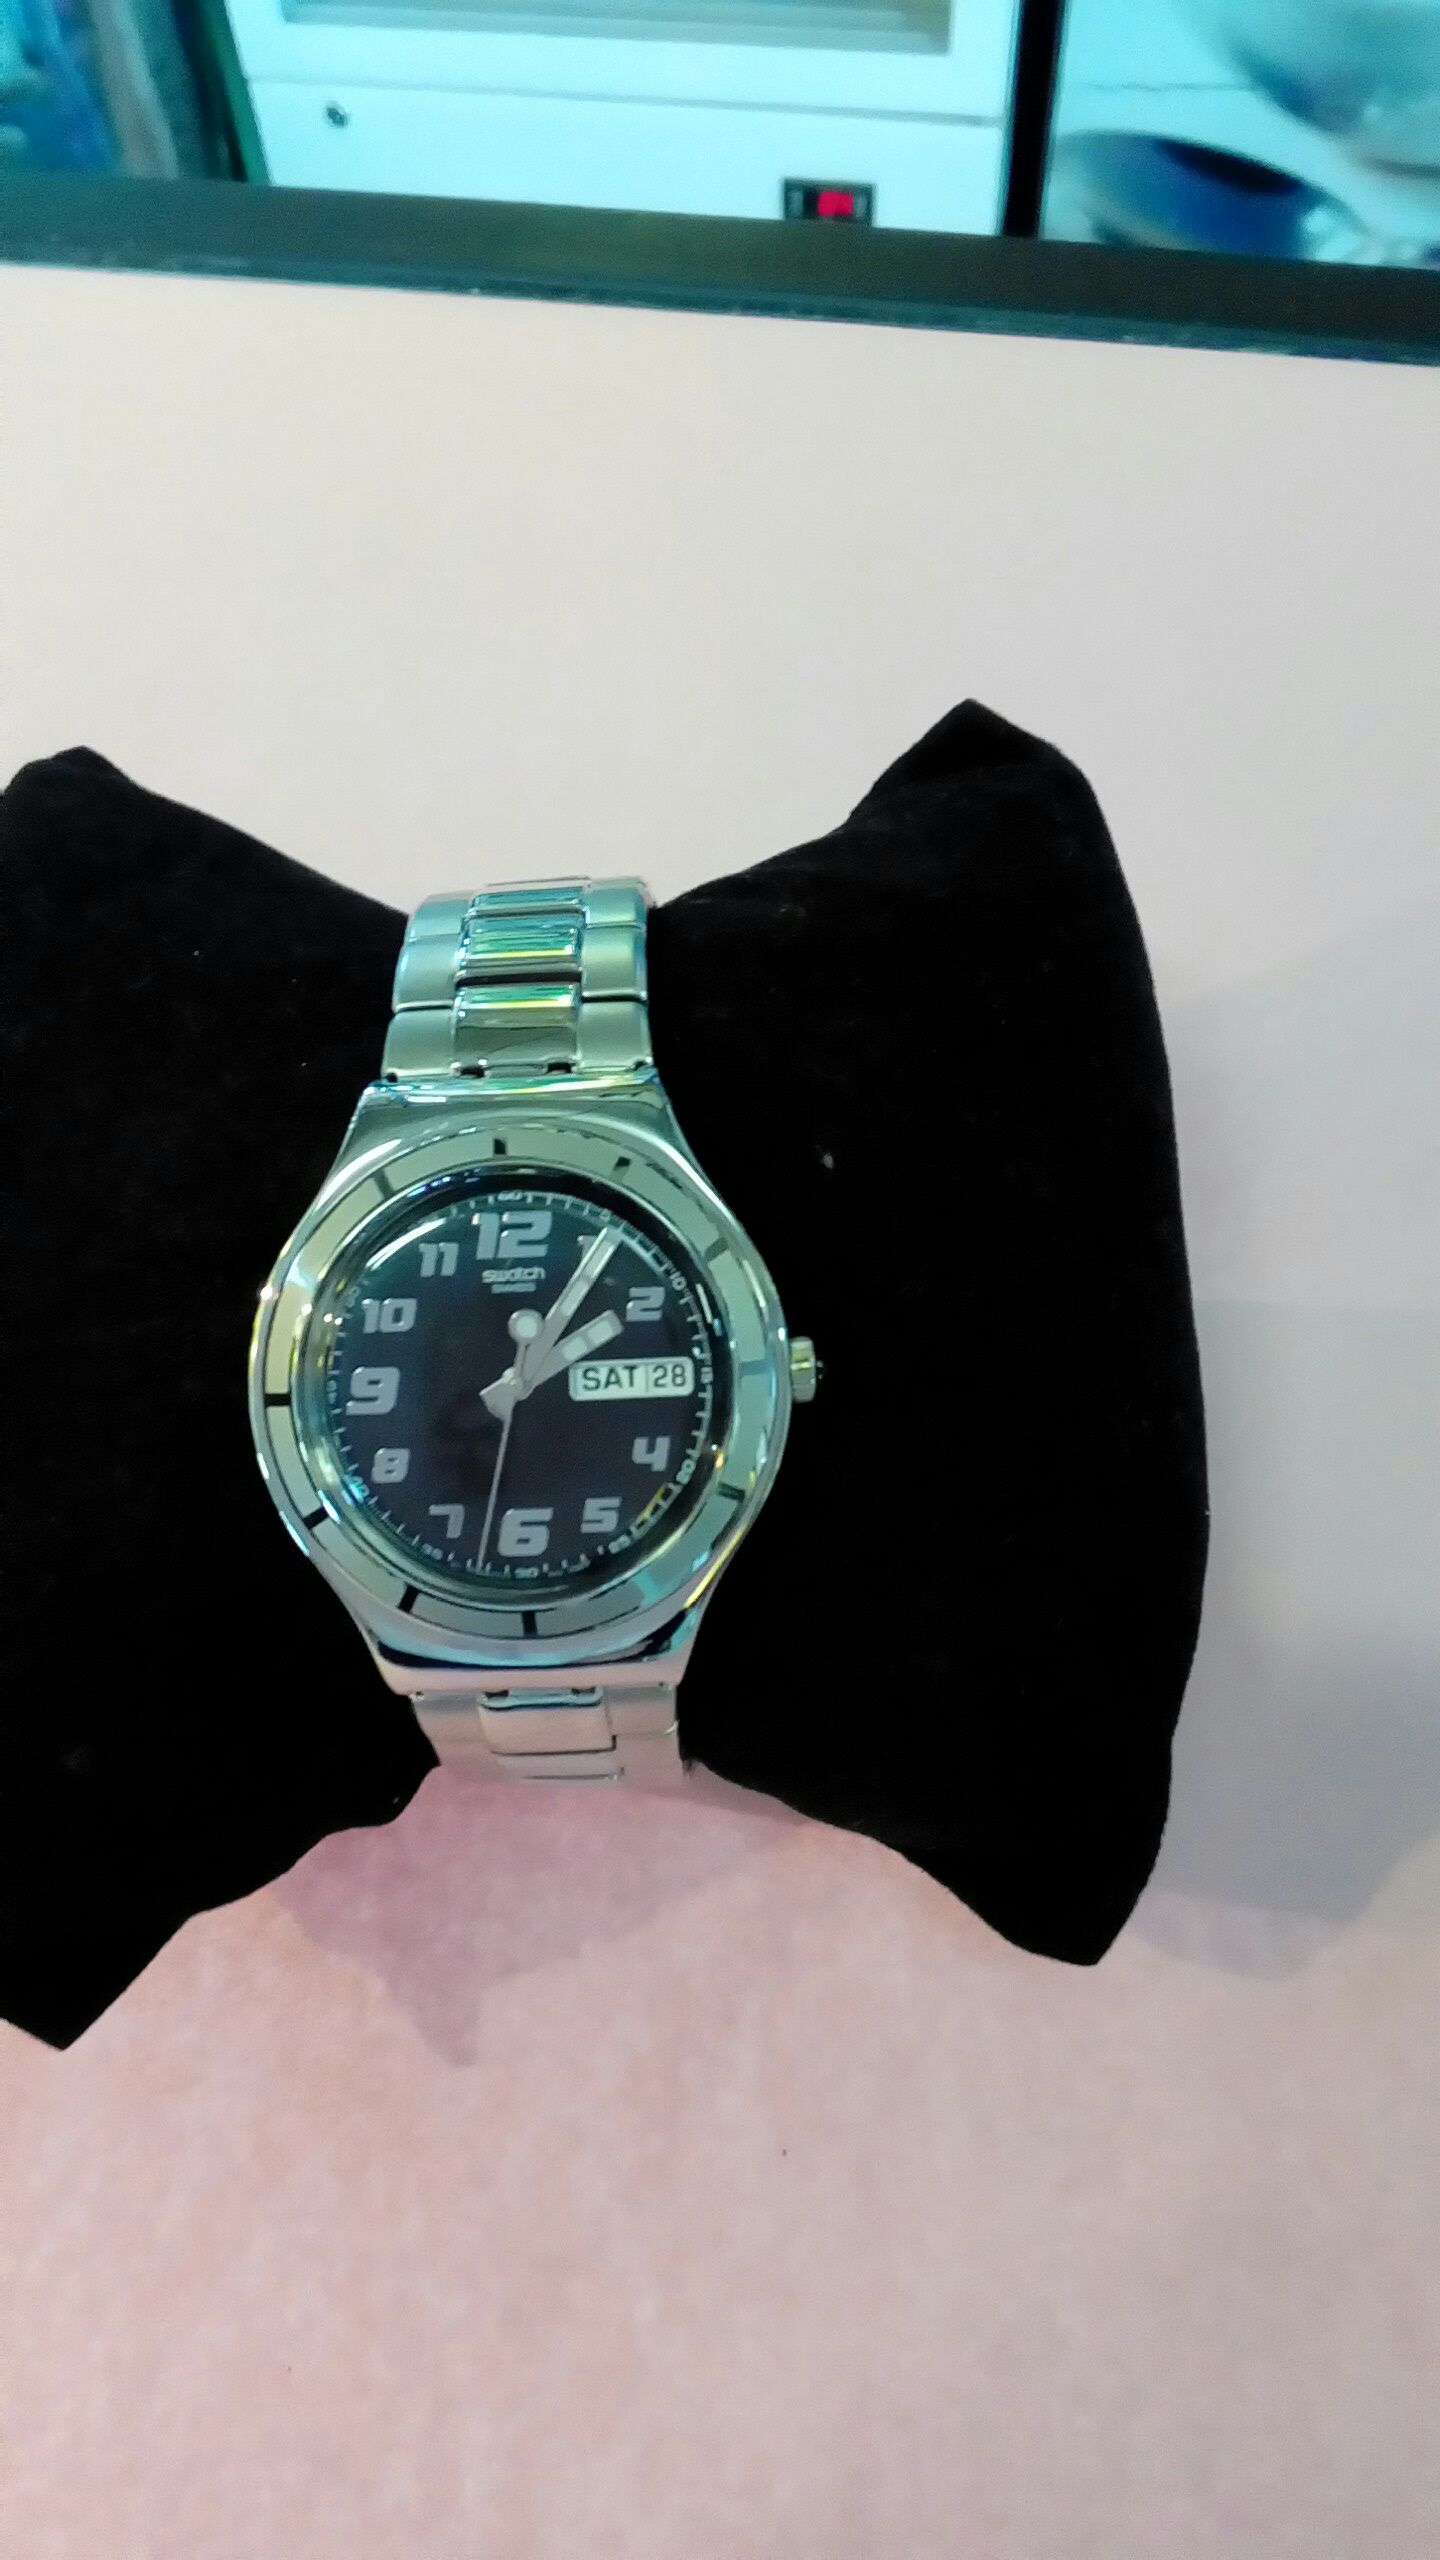 Montre swach occasion troc richwiller for Montre decoration